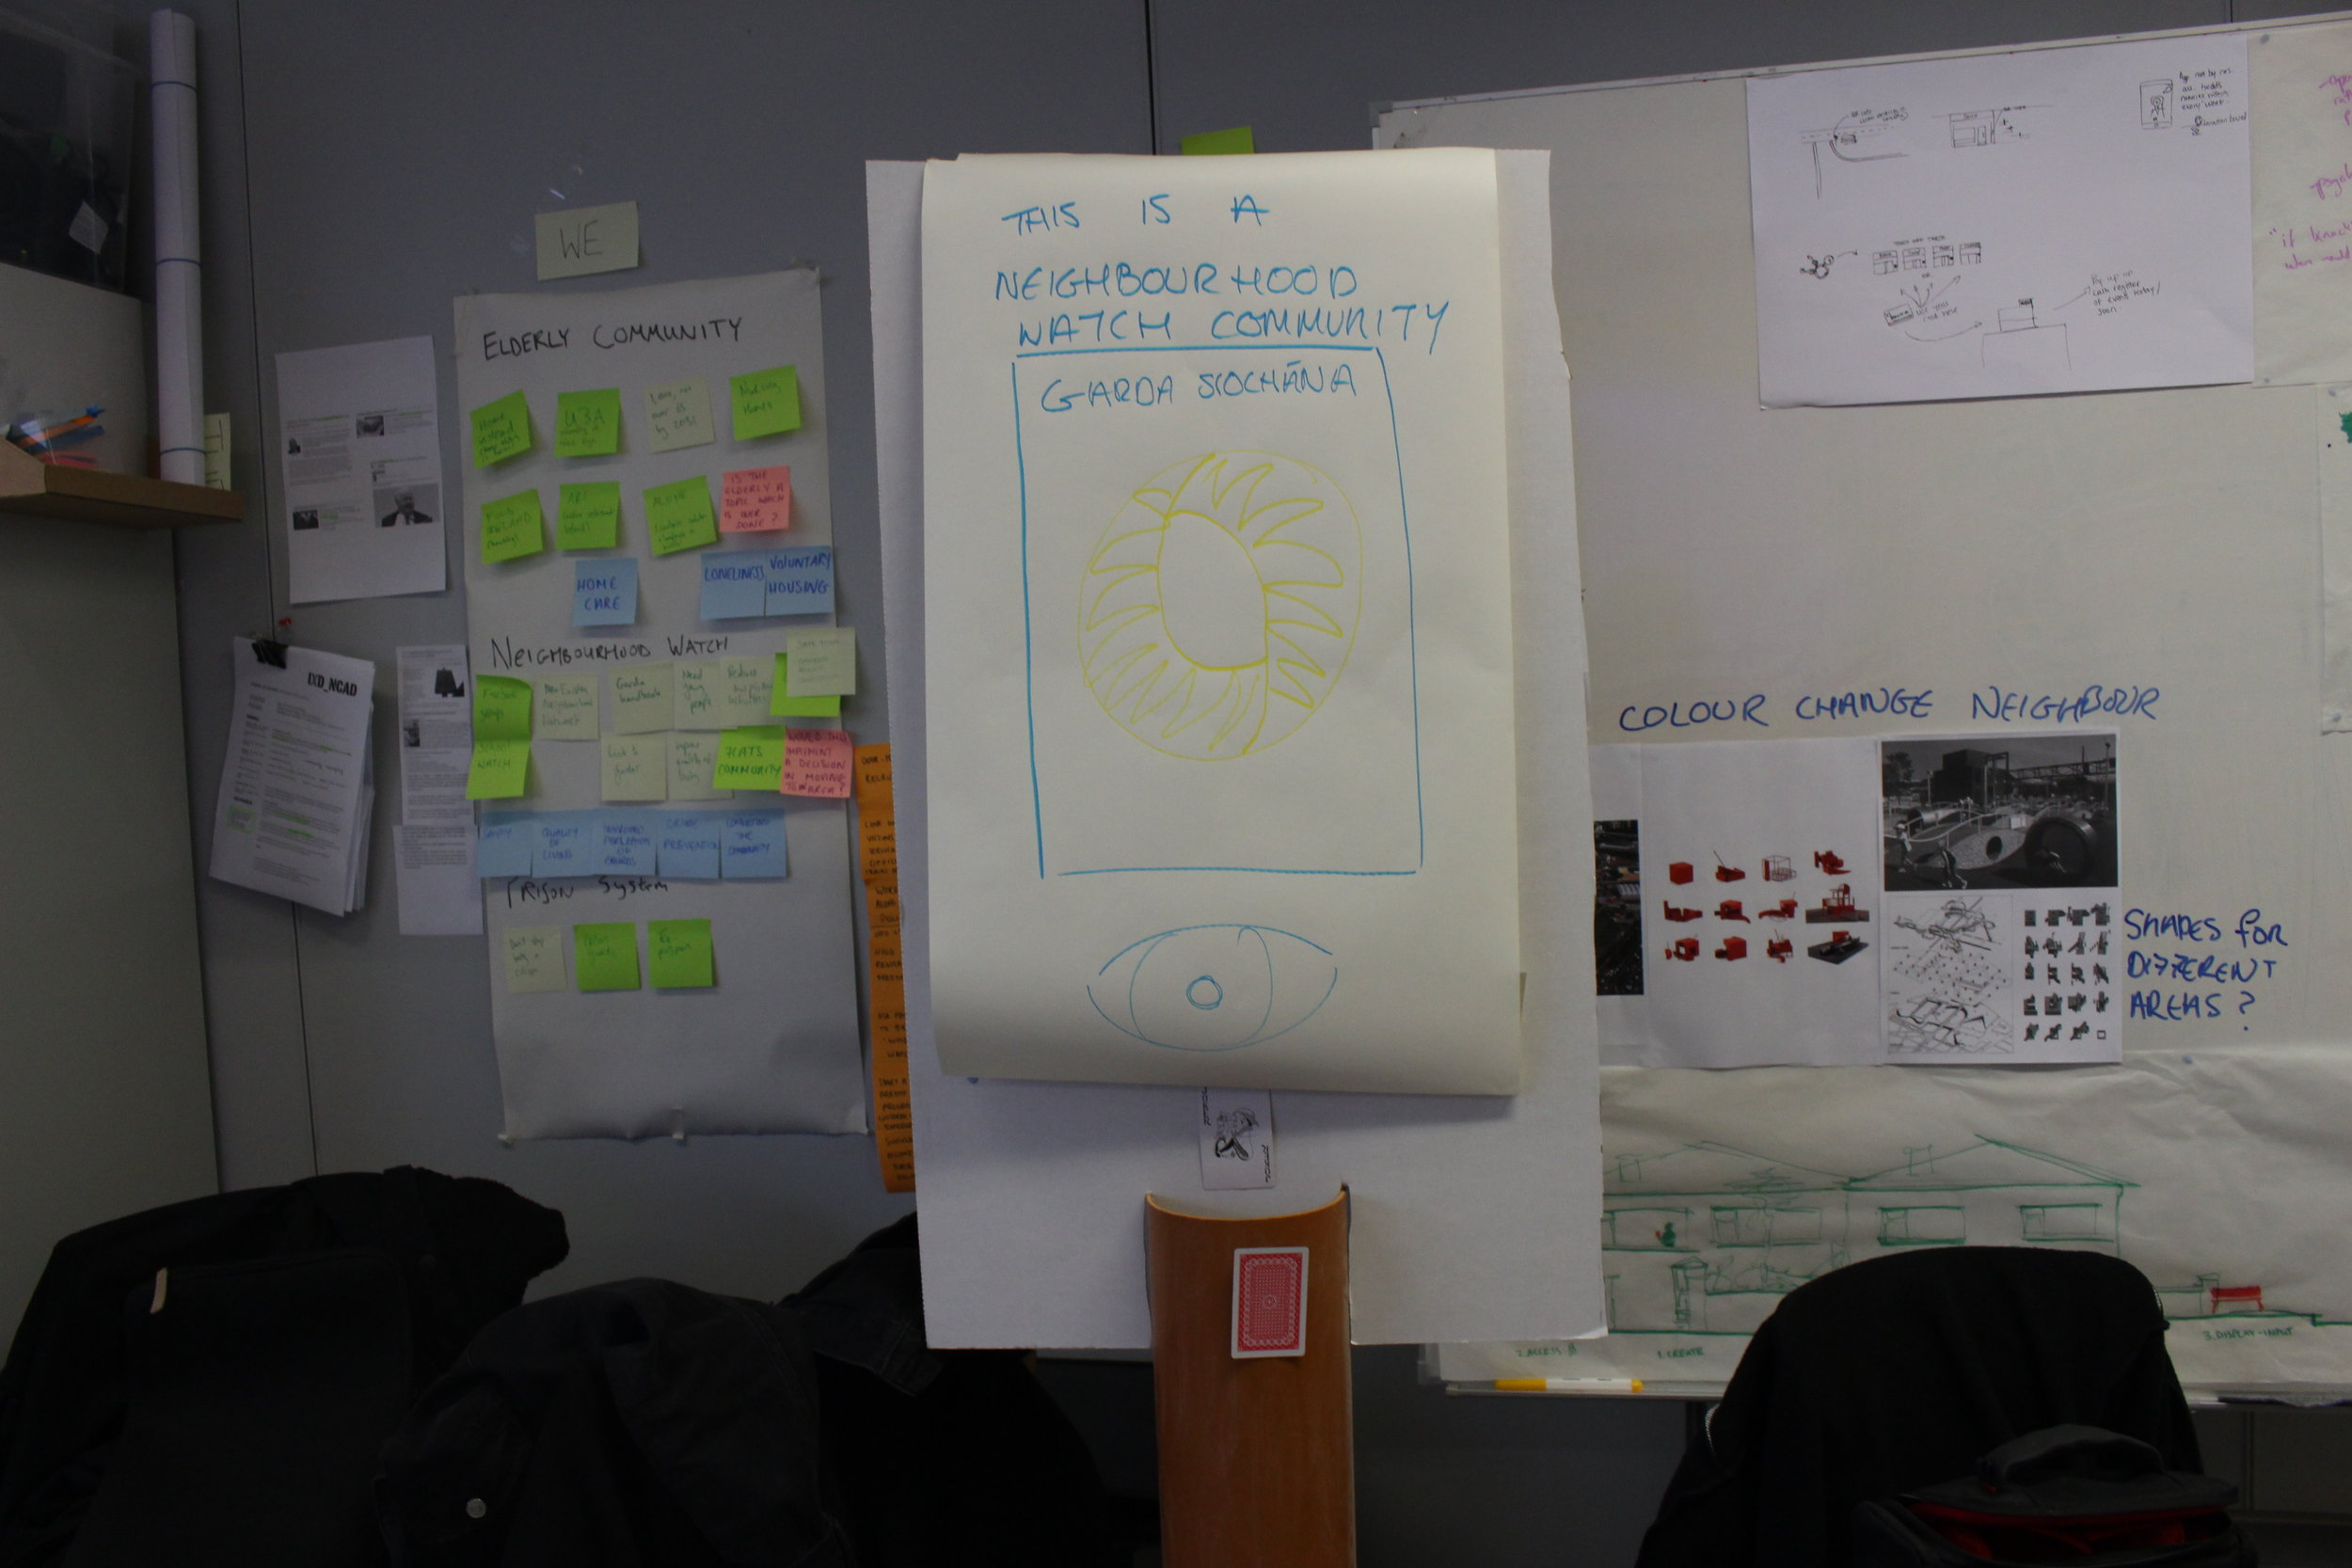 Rapid prototype of changing sign, cardboard background was the screen that would be shown